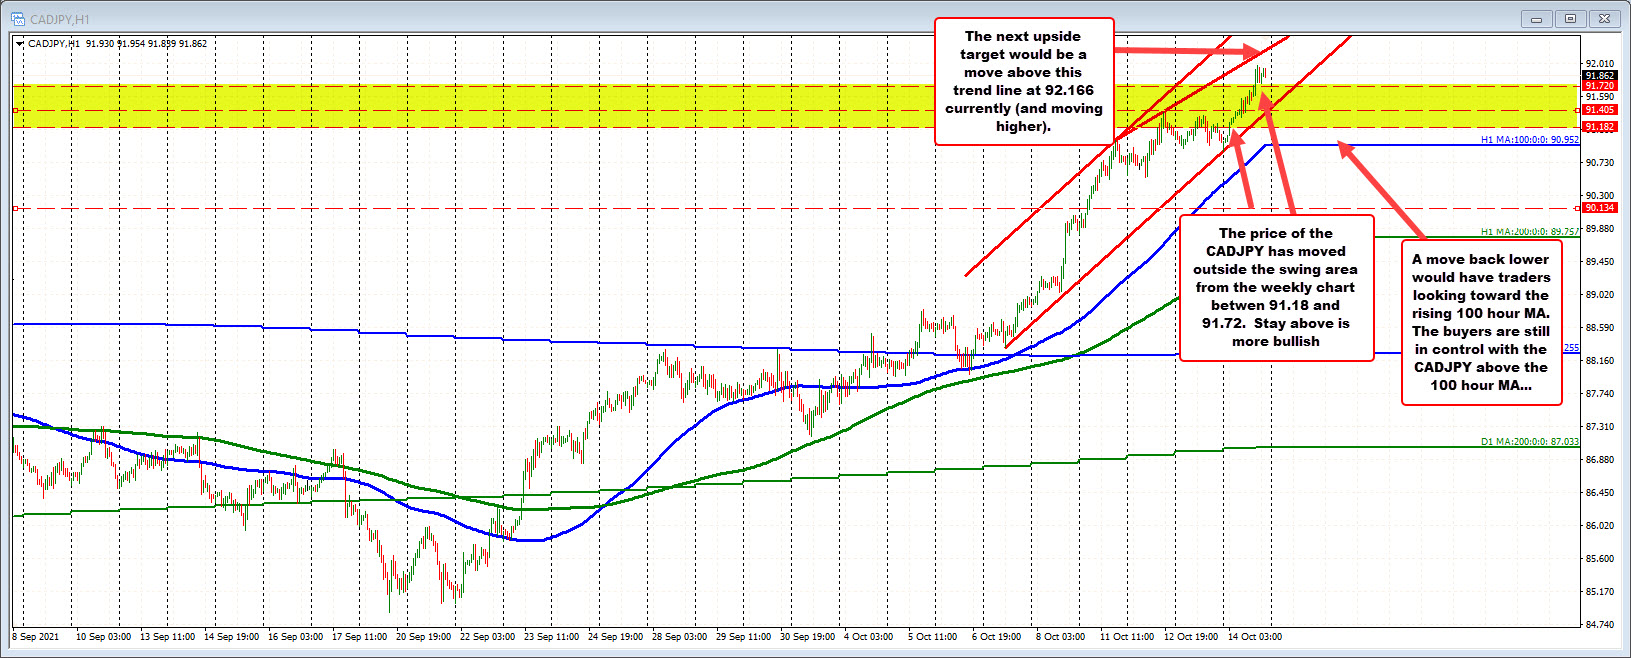 CADJPY moves above the swing resistance zone as trend risk pushes the pair higher.